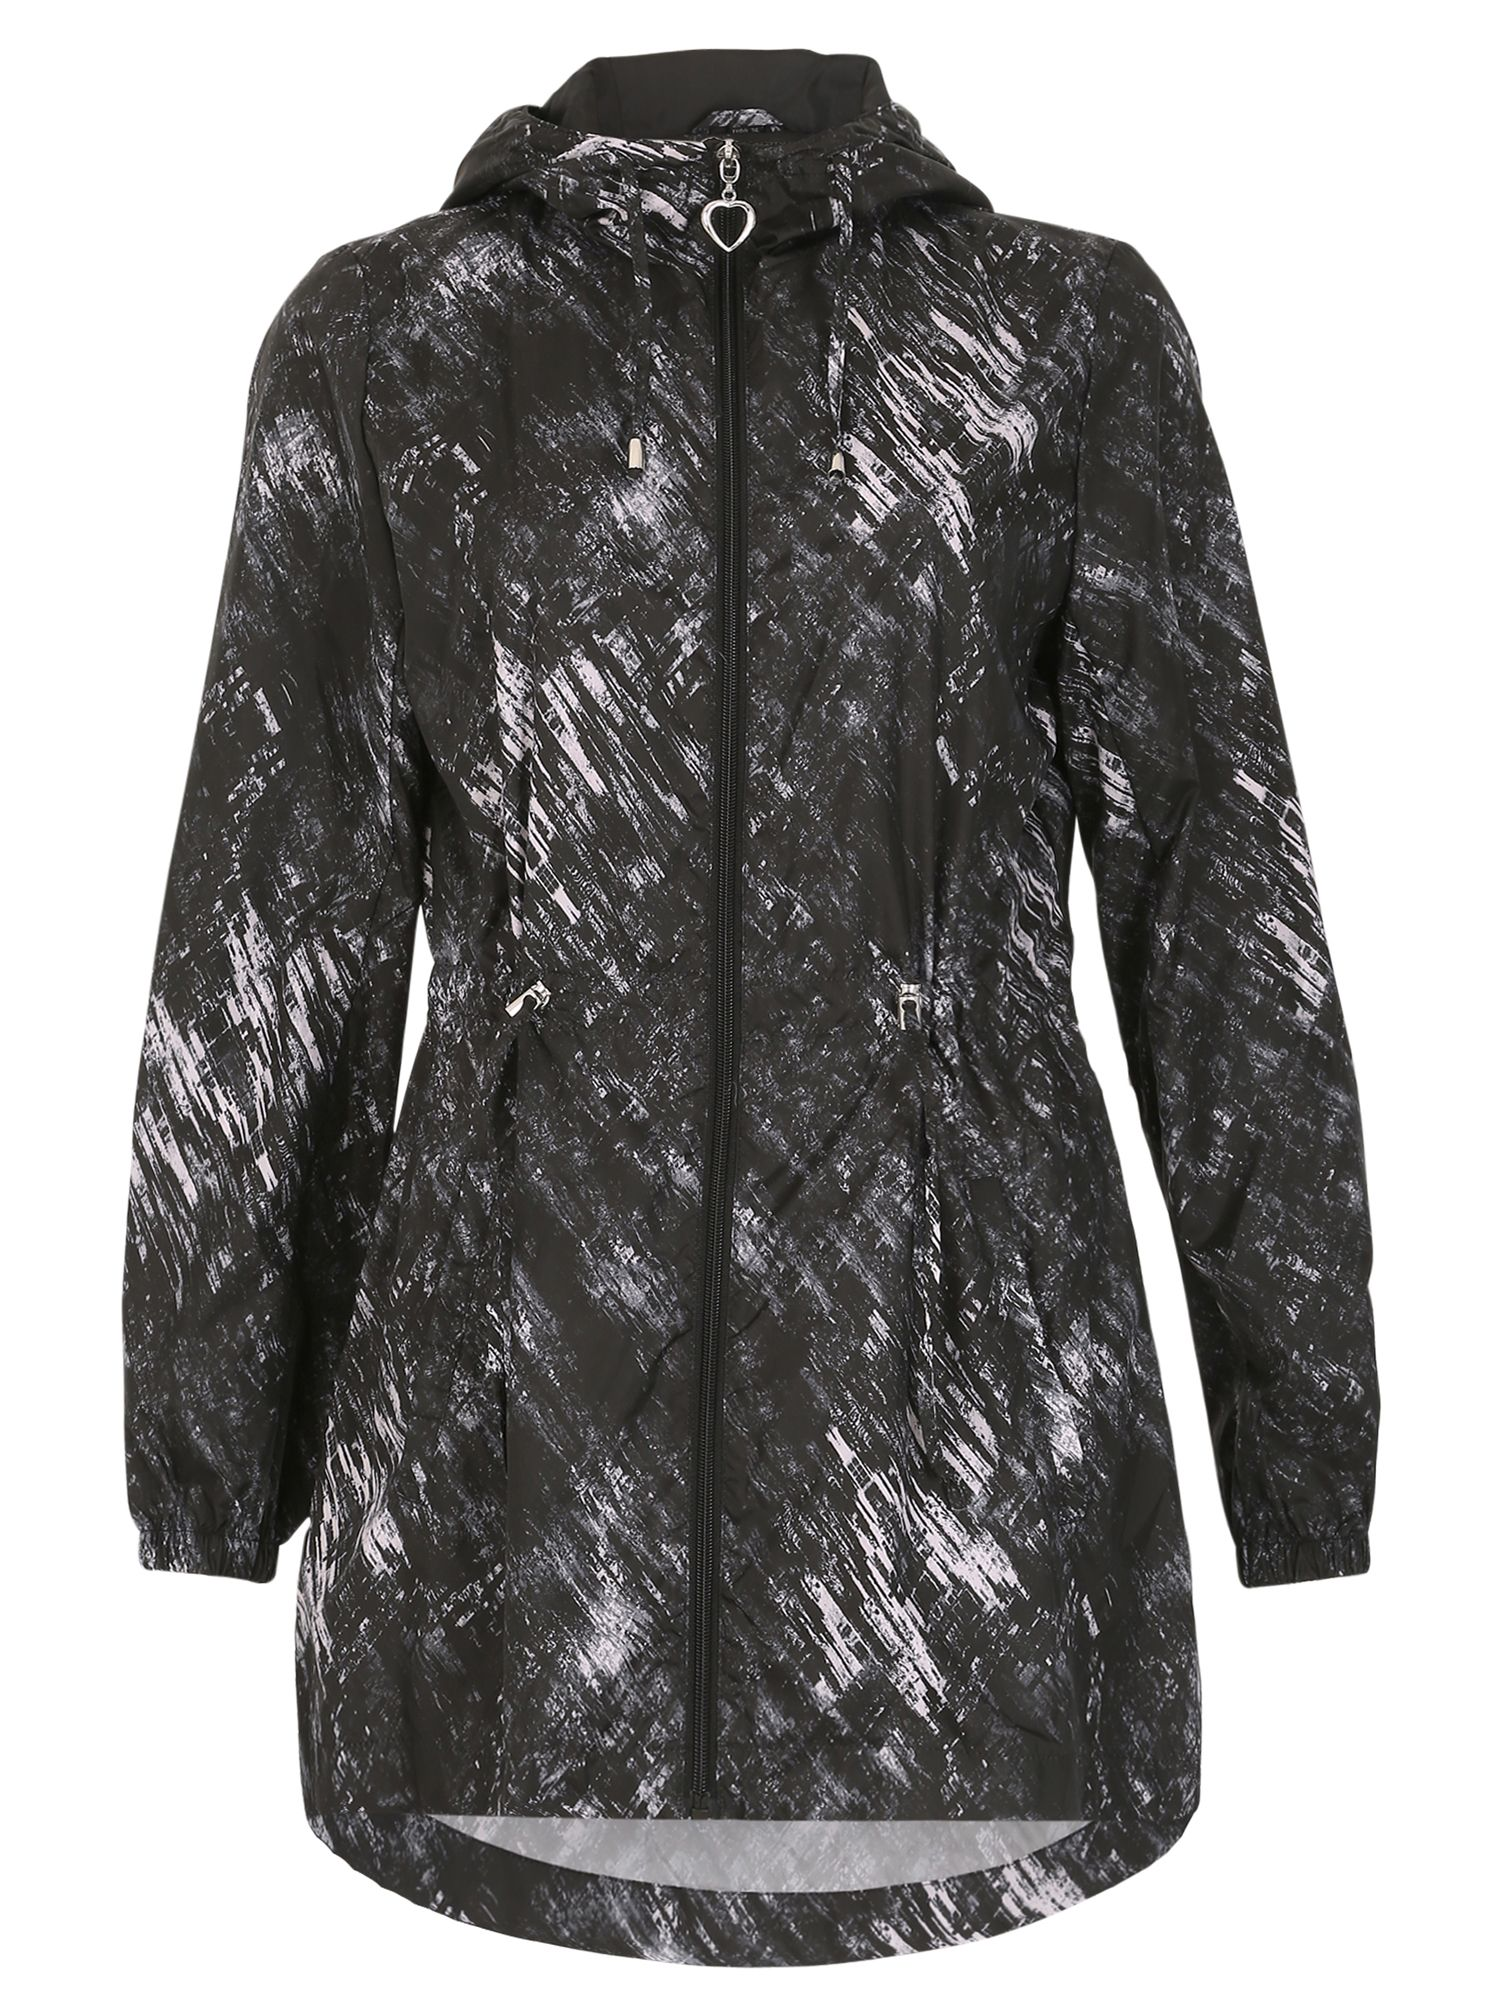 David Barry Light Weight Unlined Showerproof Jacket, Black